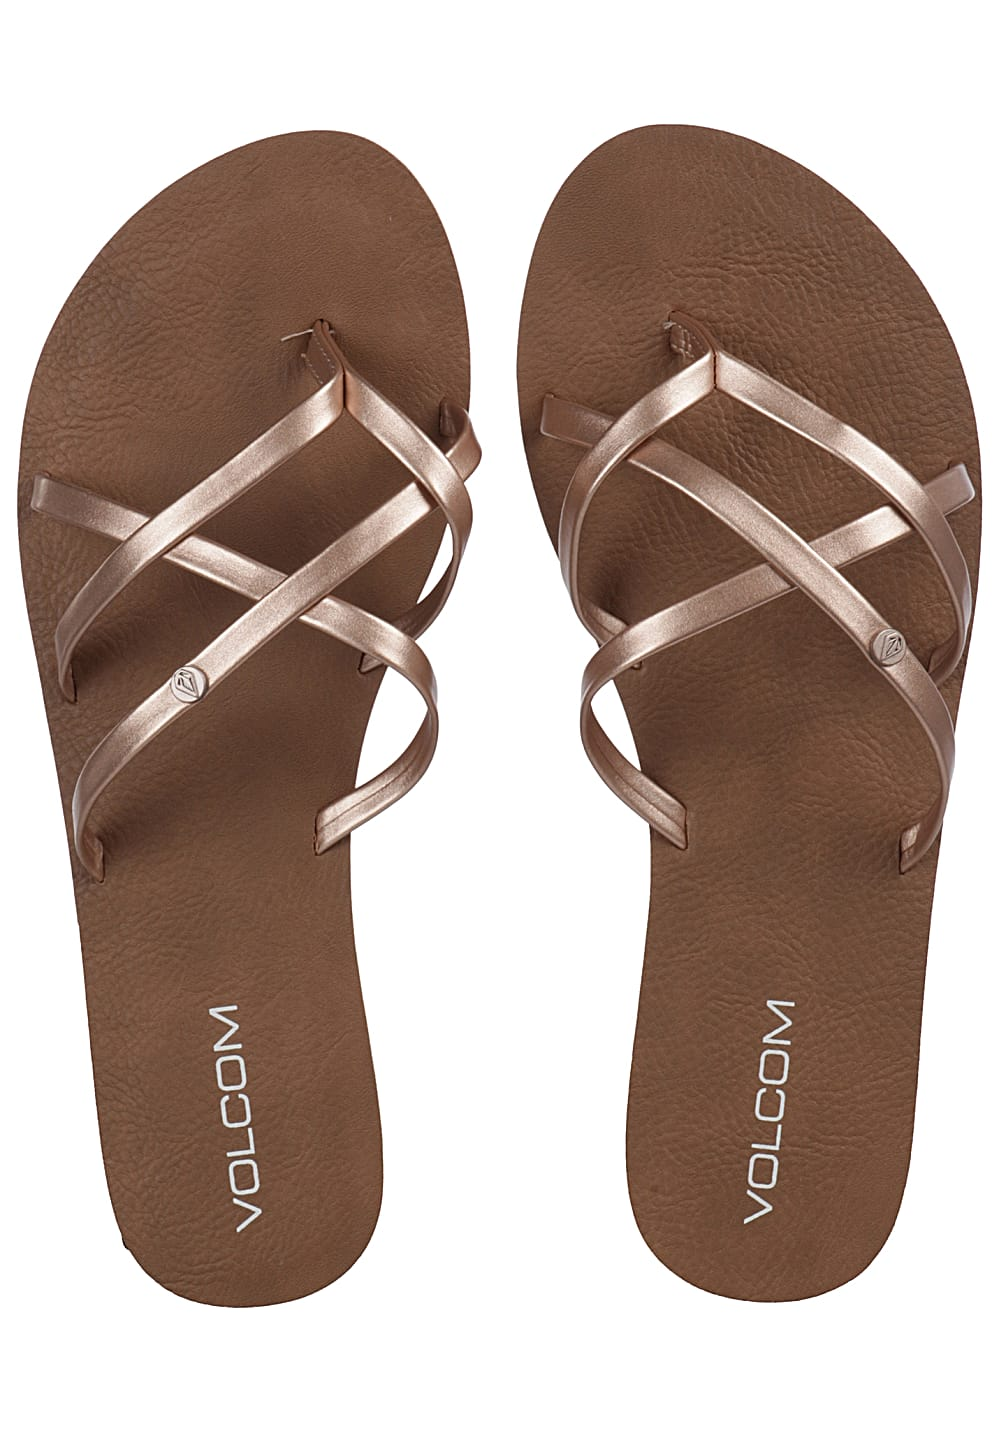 9108e92ee99 Volcom New School - Sandals for Women - Gold - Planet Sports